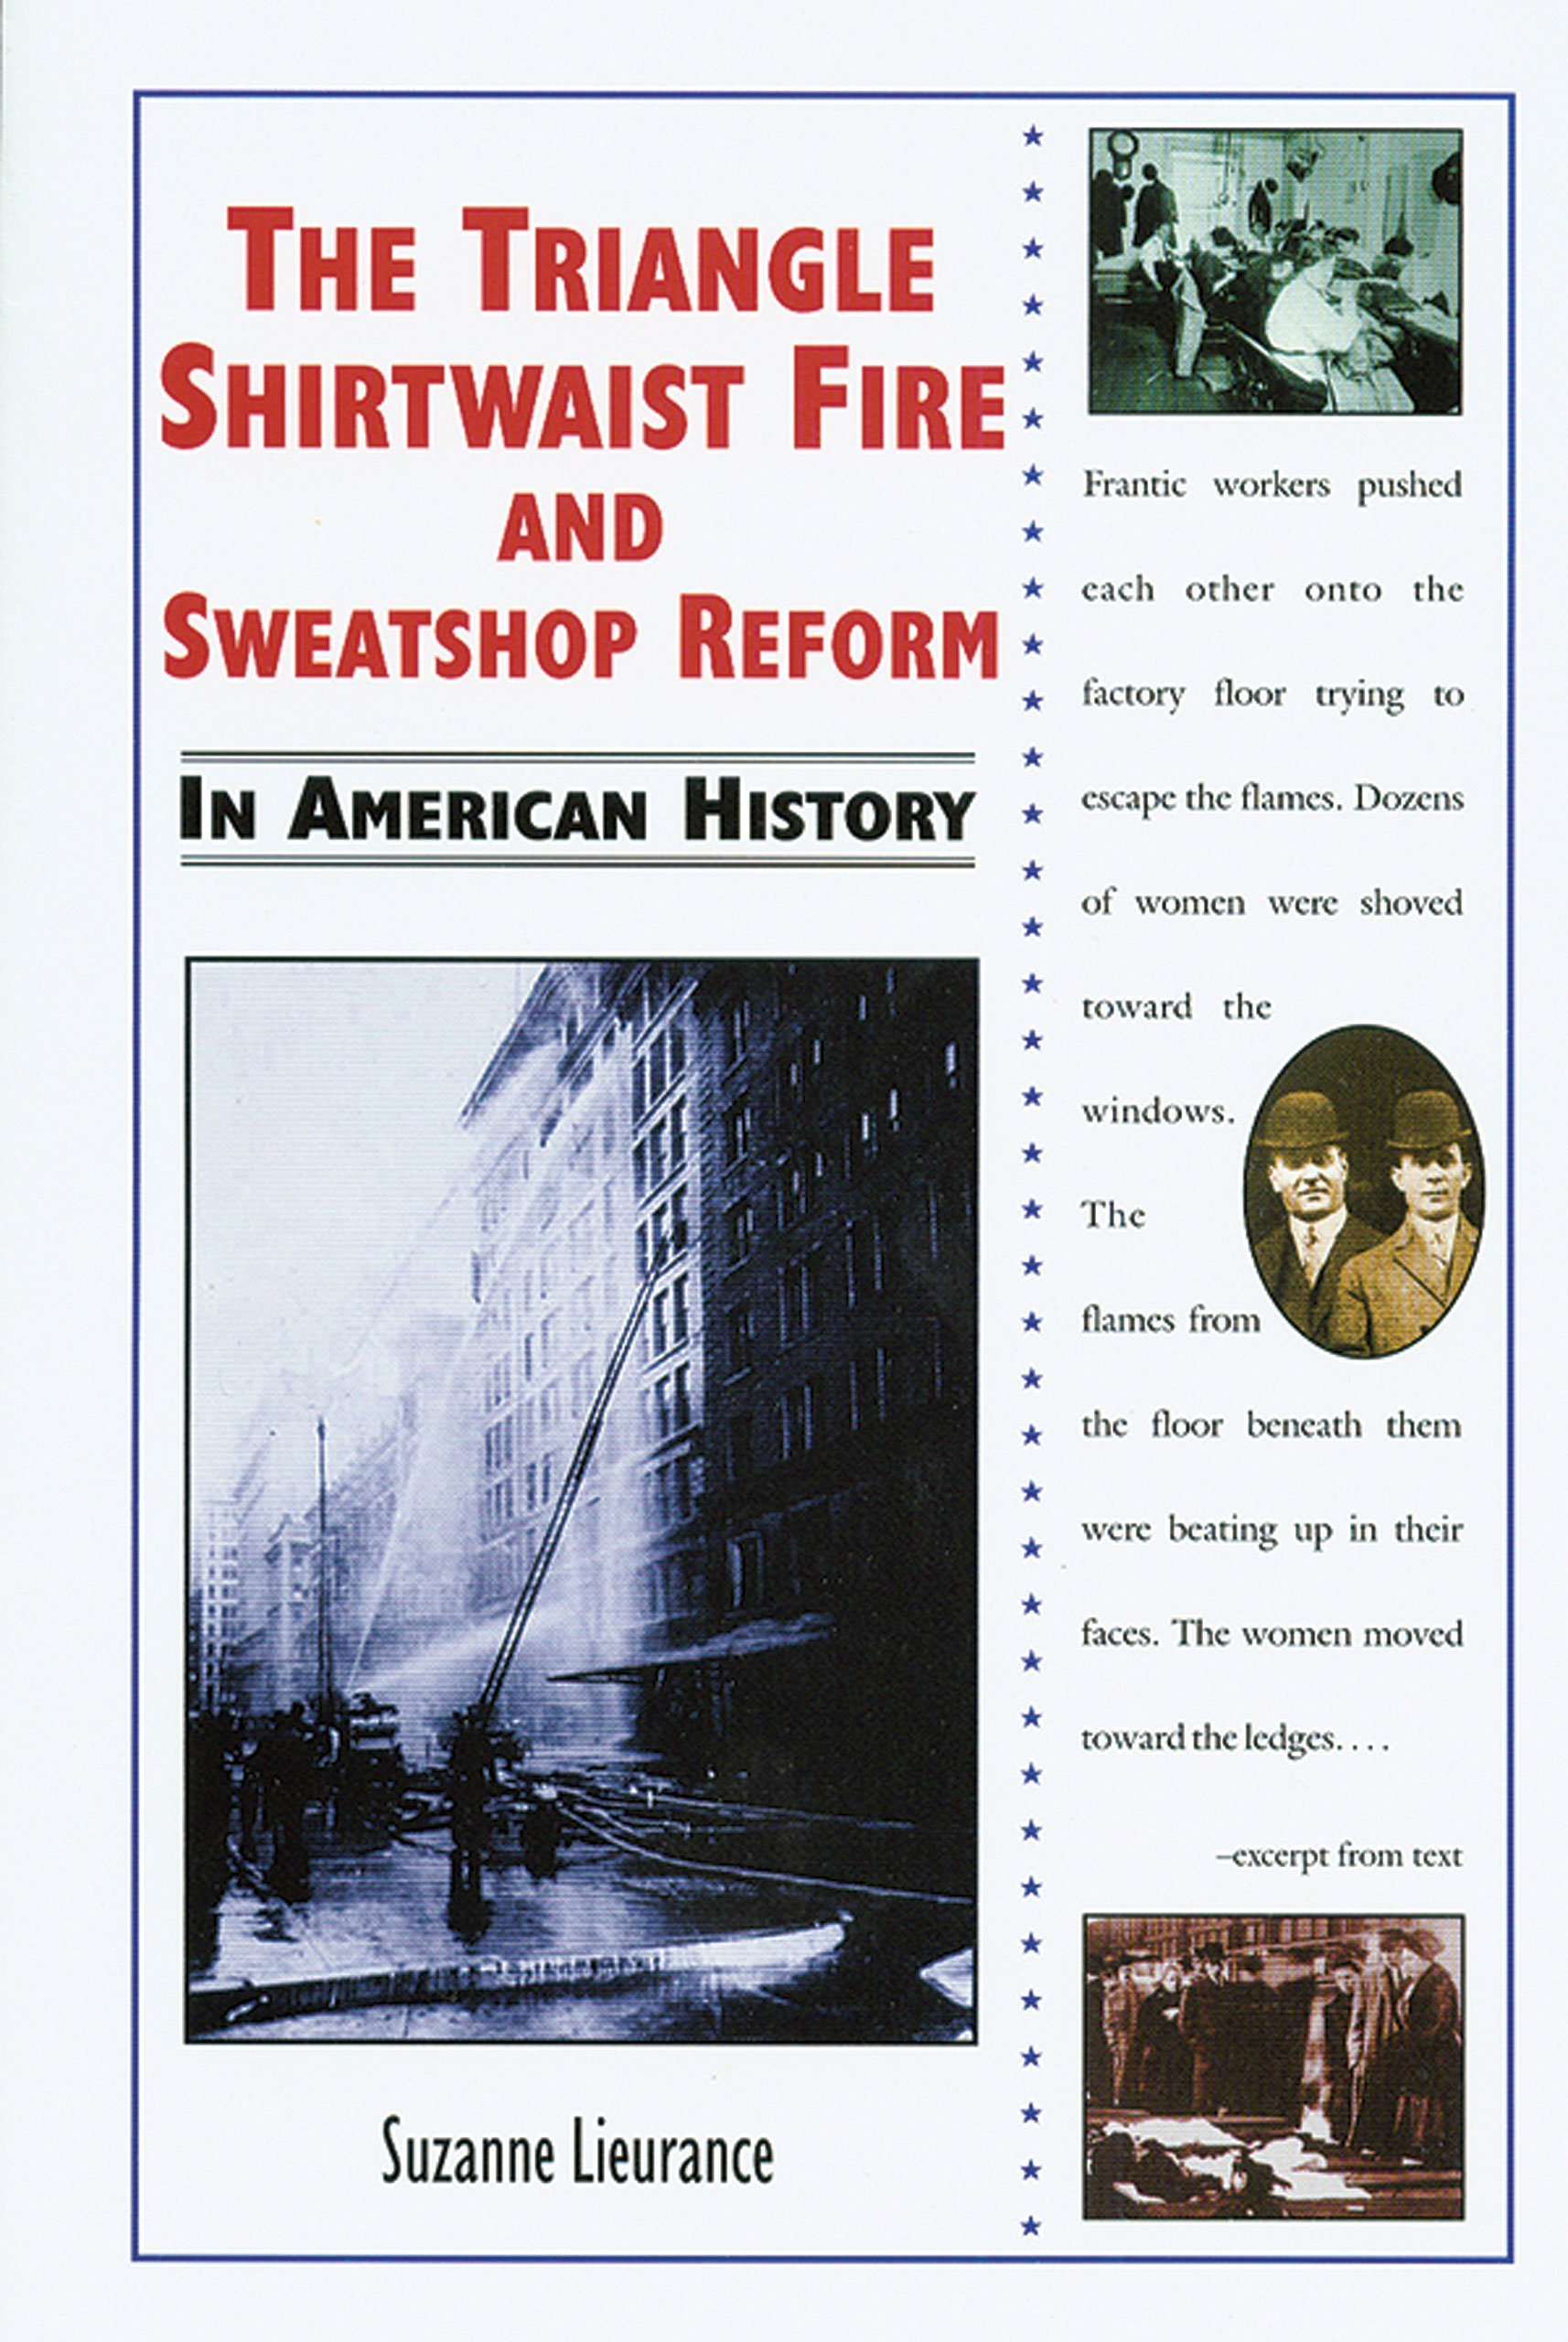 The Triangle Shirtwaist Fire and Sweatshop Reform in American History ebook